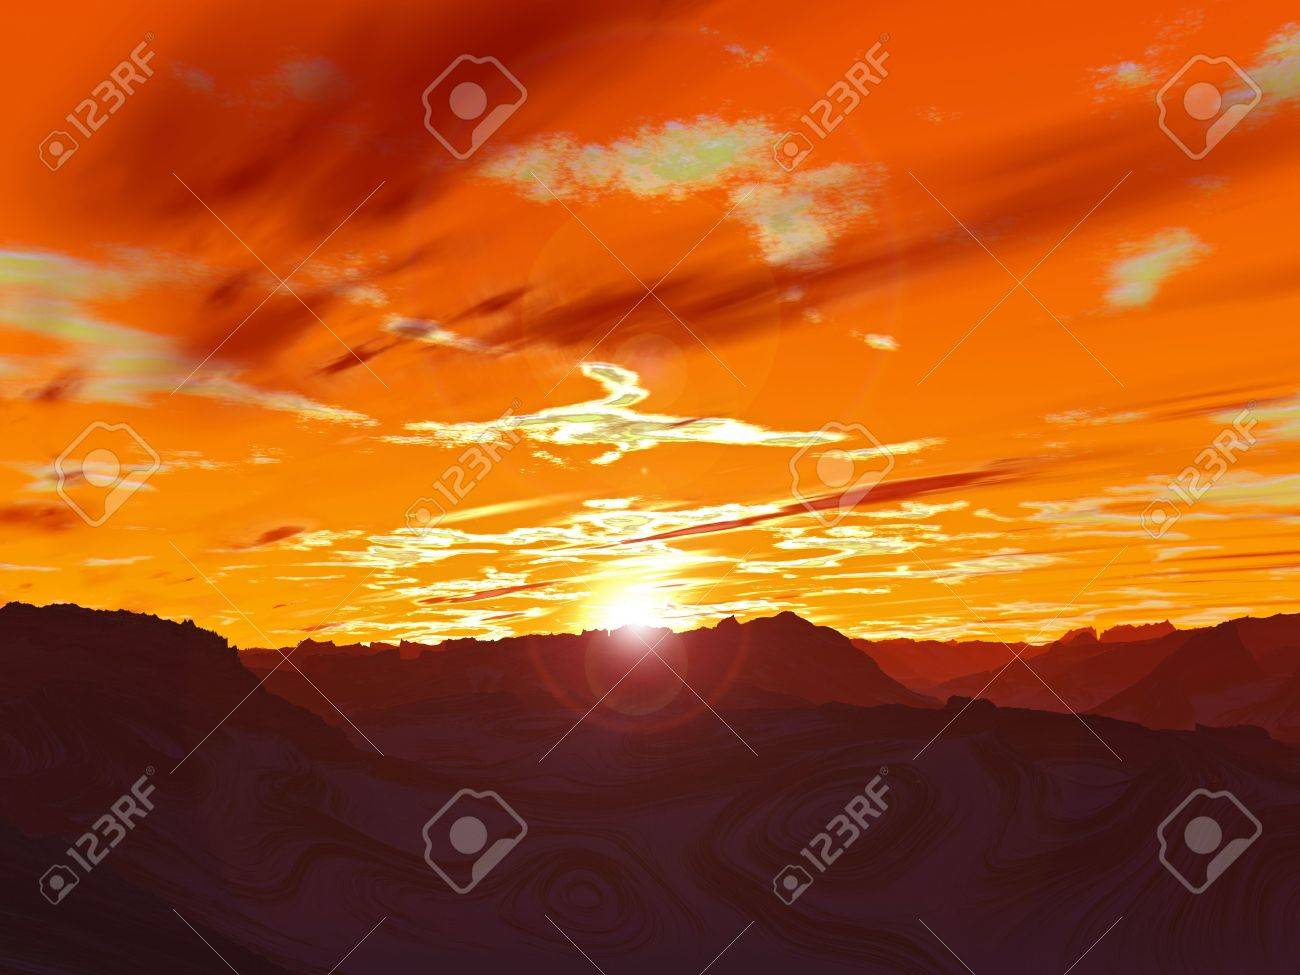 Another galaxy. Abstract red planet. Computer generated. Sunset Stock Photo - 3925480